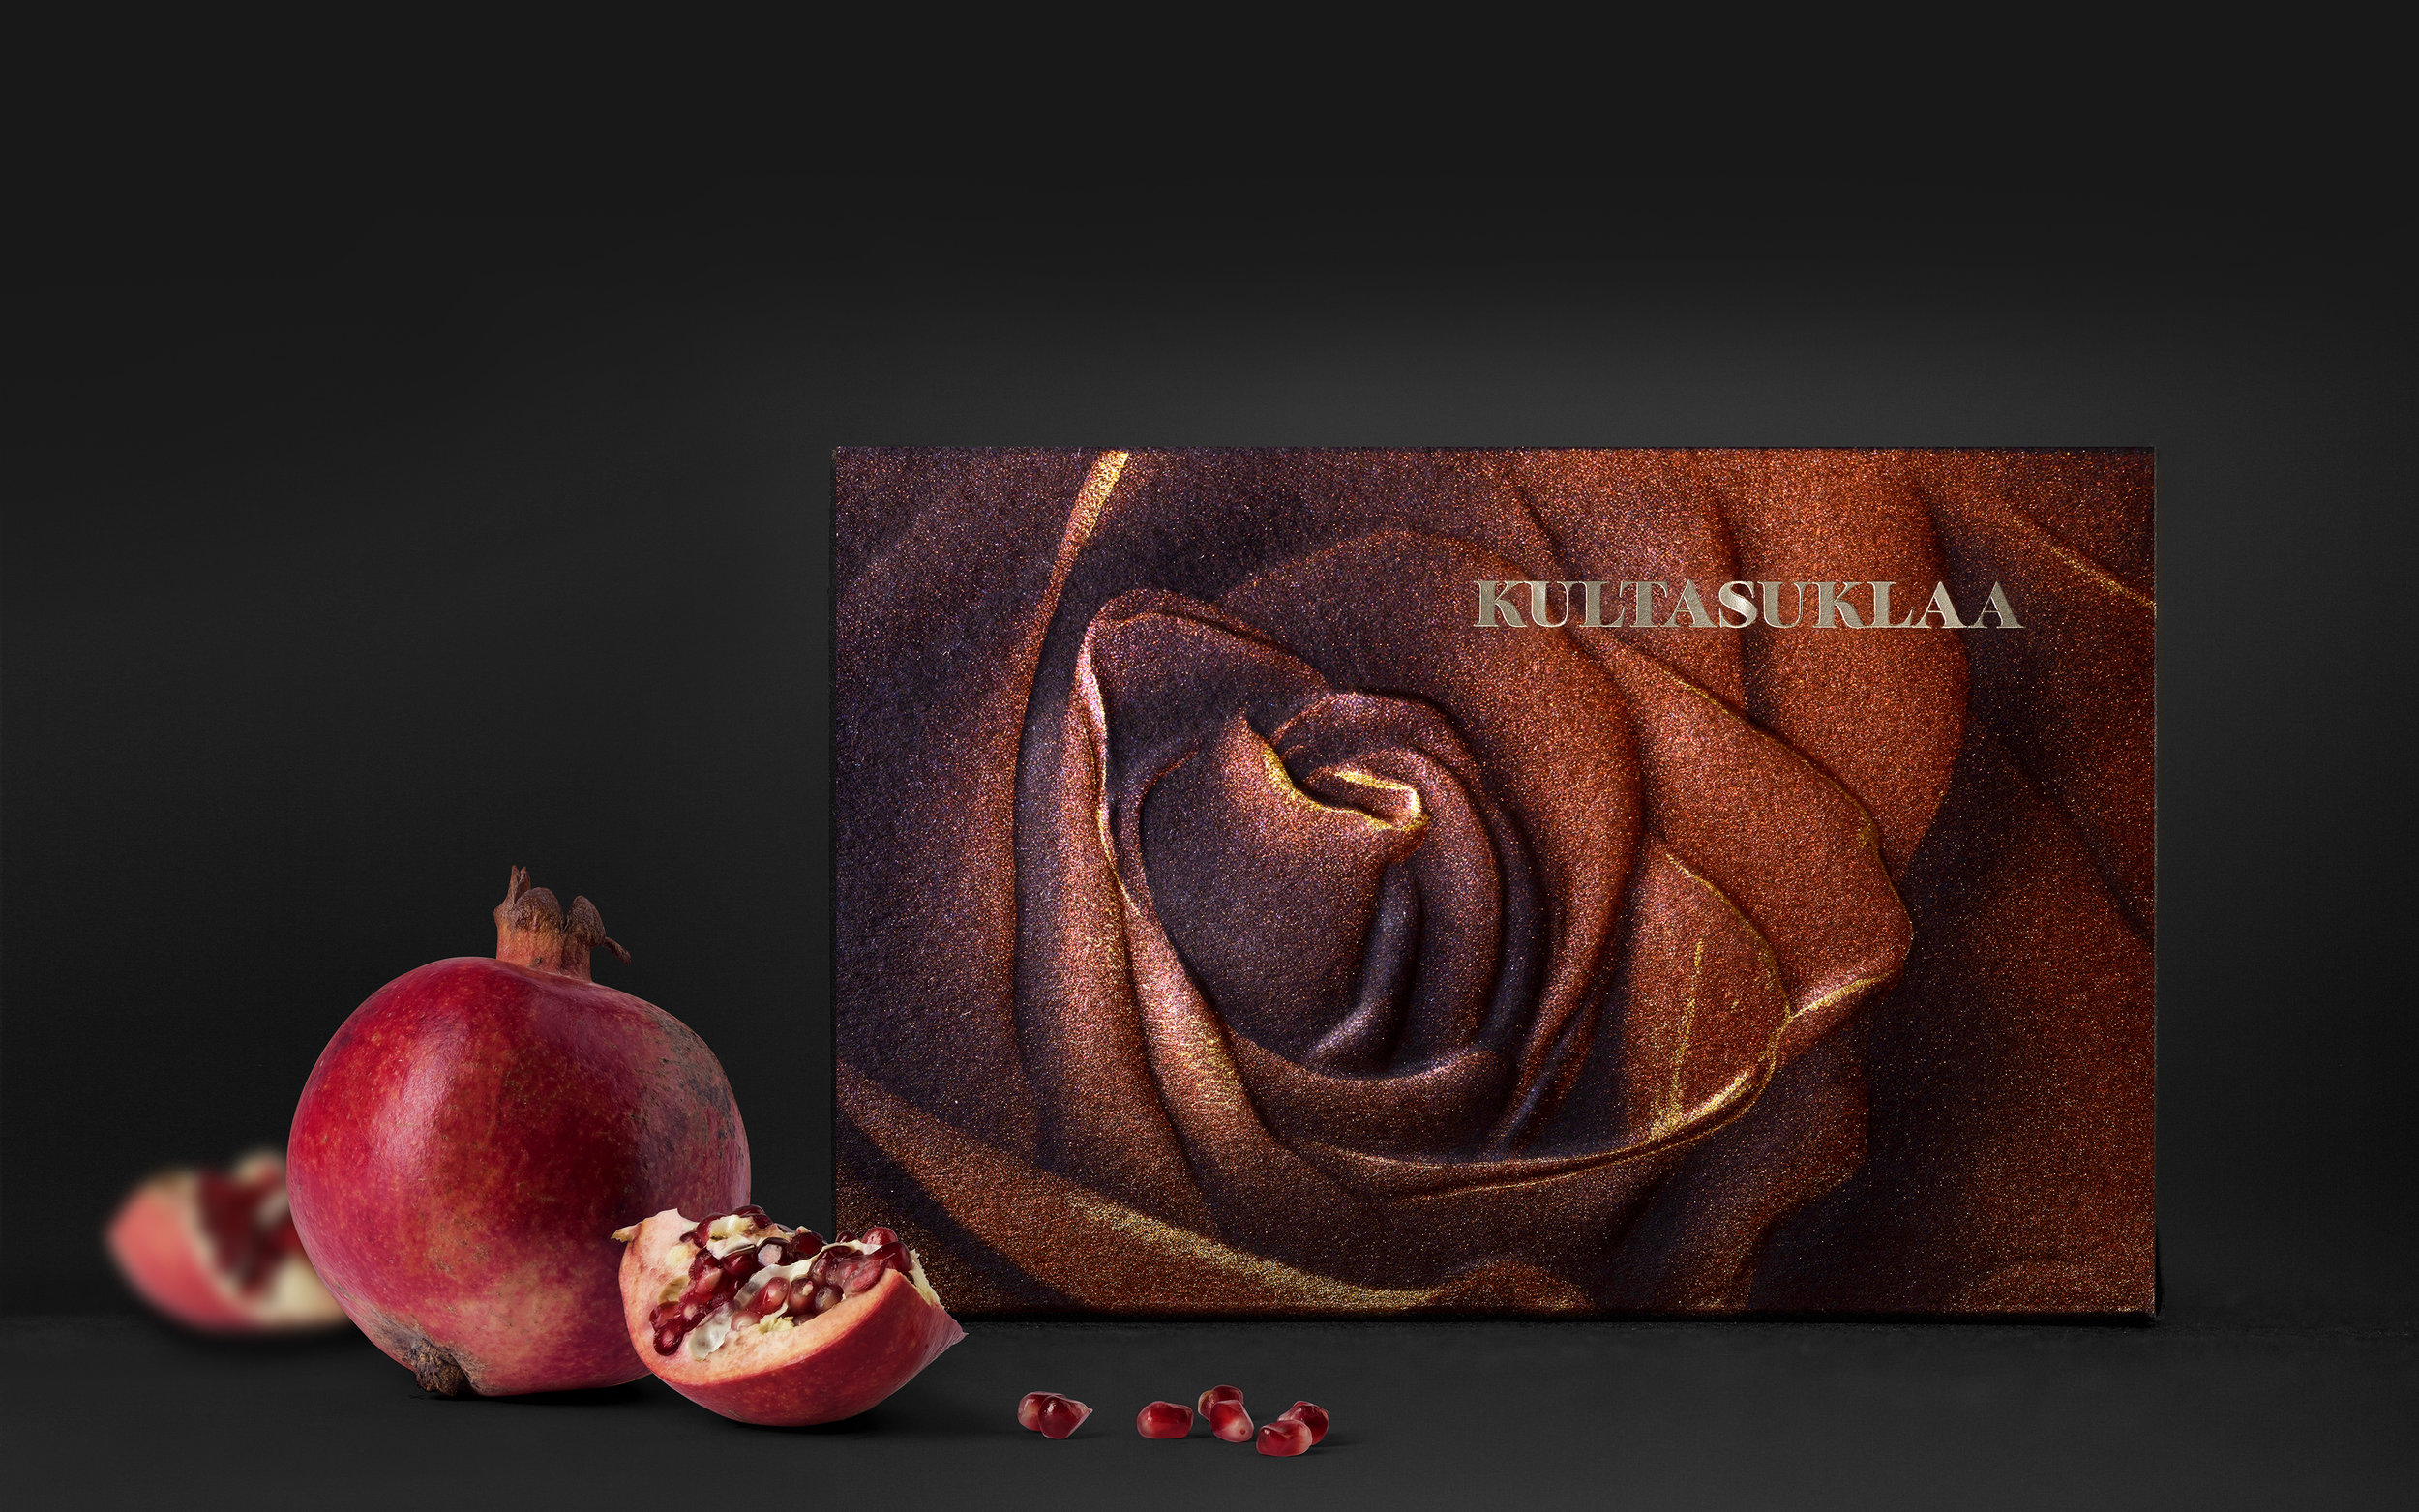 Kultasuklaa Rose Chocolate Packaging, a New Way of Printing Packages with Pigment Colors / World Brand Design Society